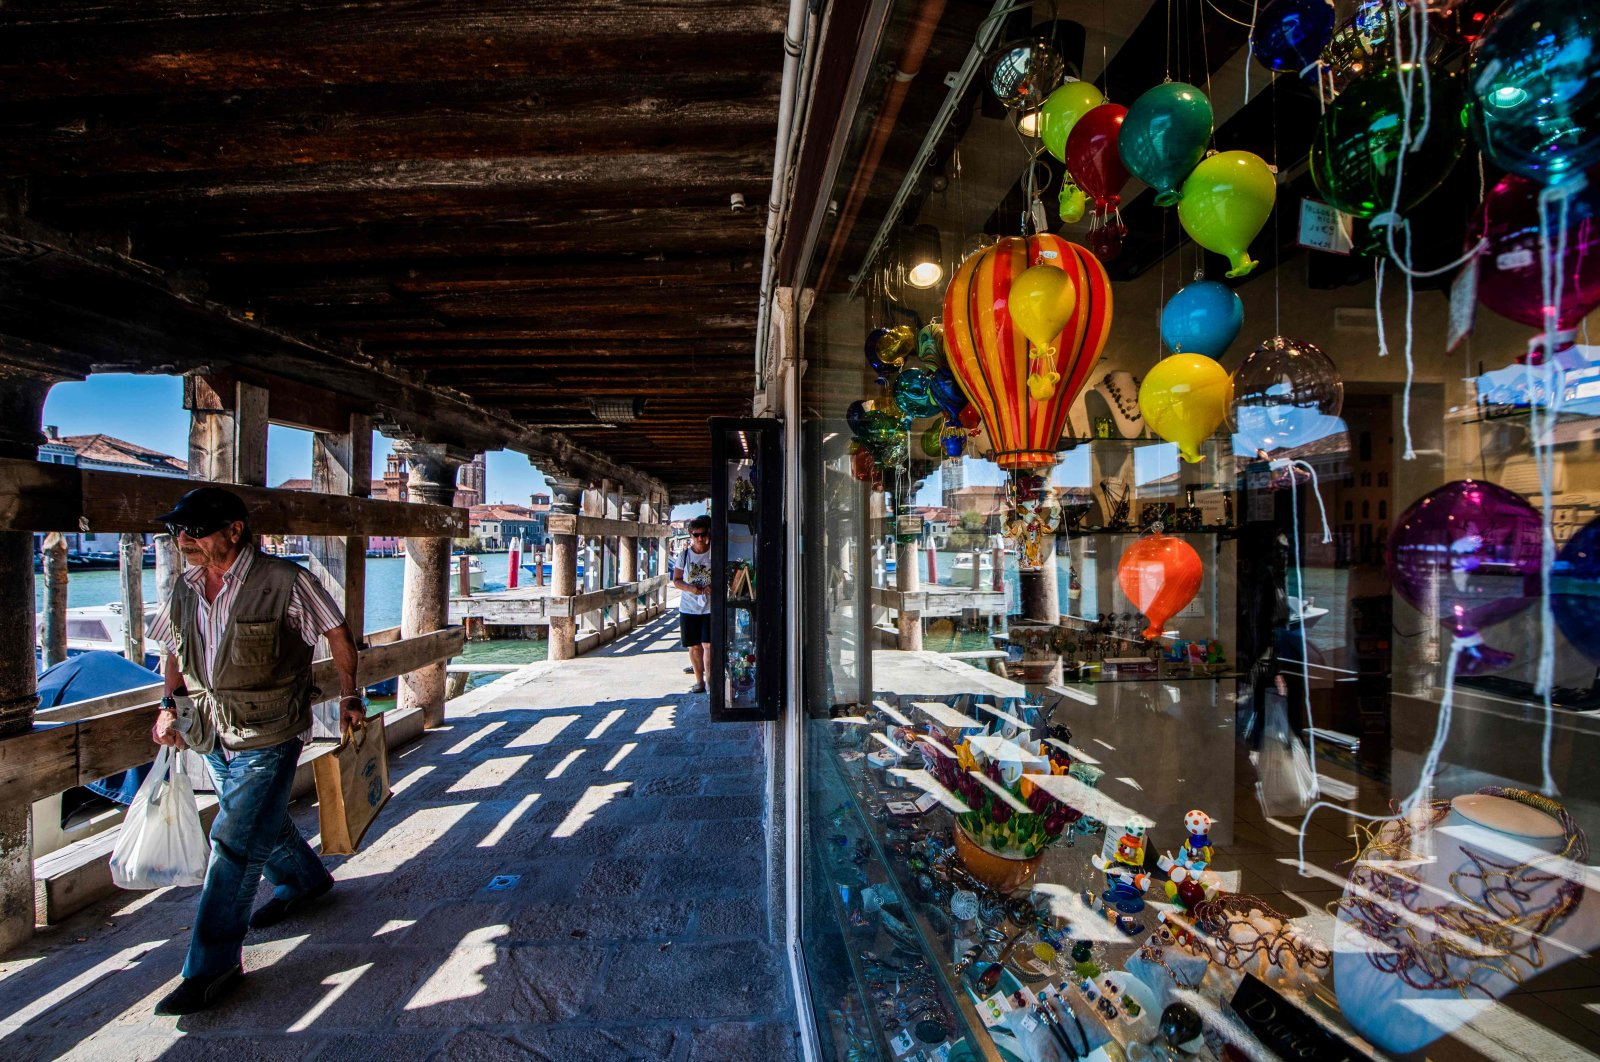 An art products shop along a canal in Murano, Italy on Sept. 8, 2020. (AFP Photo)